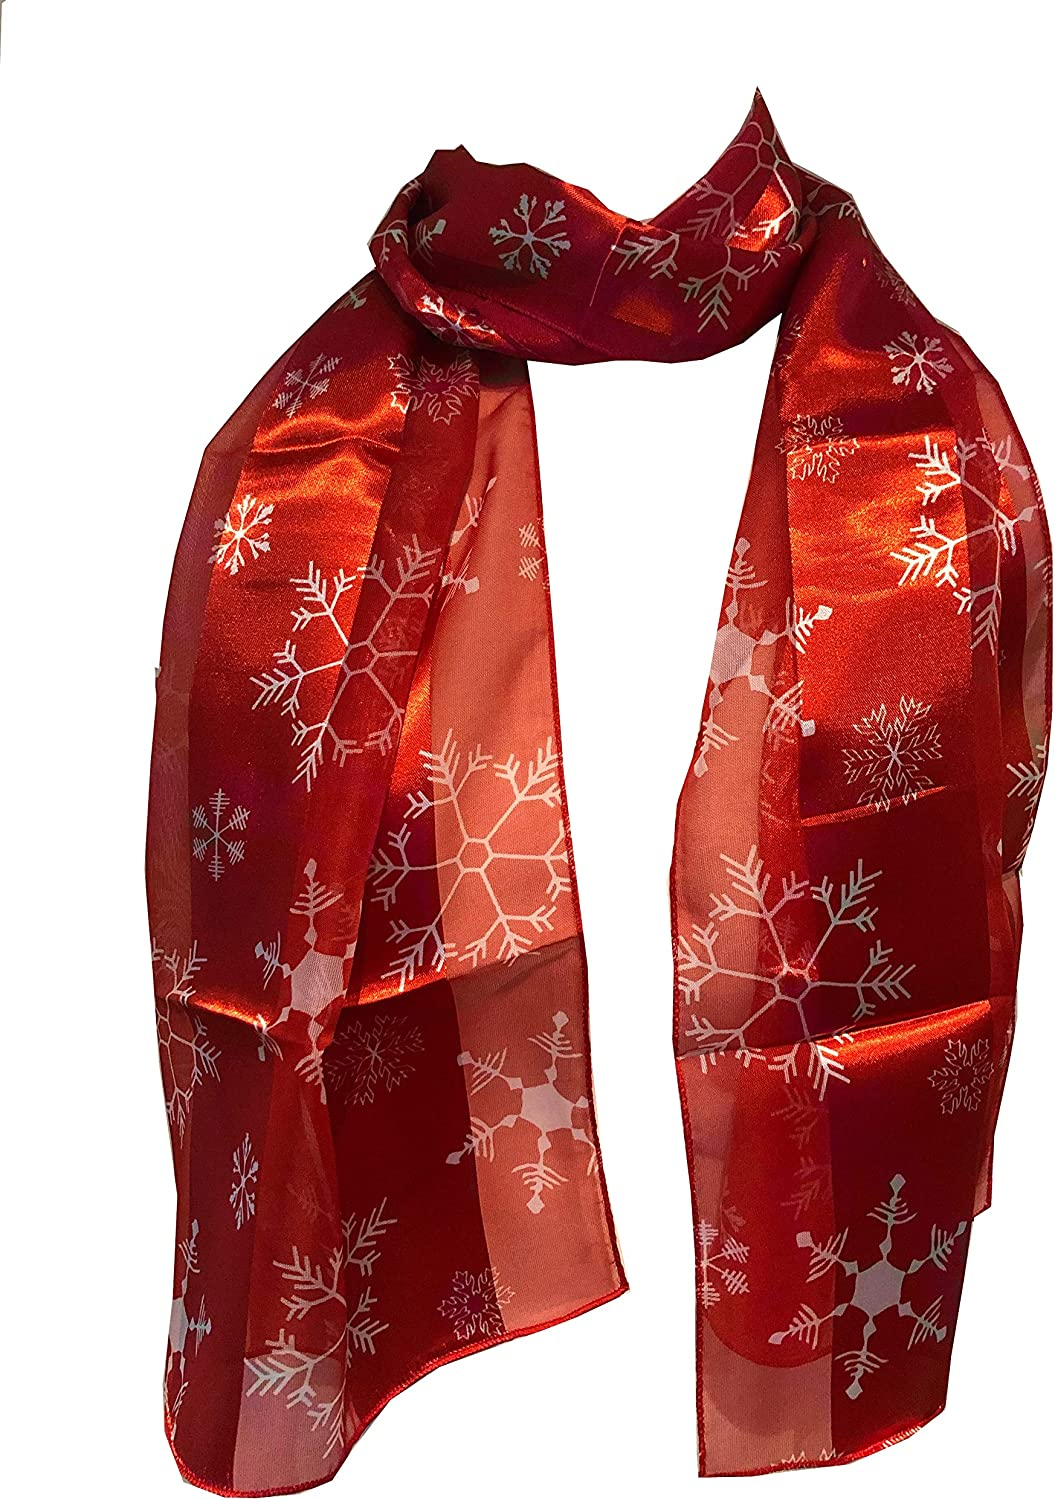 Pamper Yourself Now Red Christmas Snowflake Design Scarf, Lovely Chrismas Scarf Great for Presents.